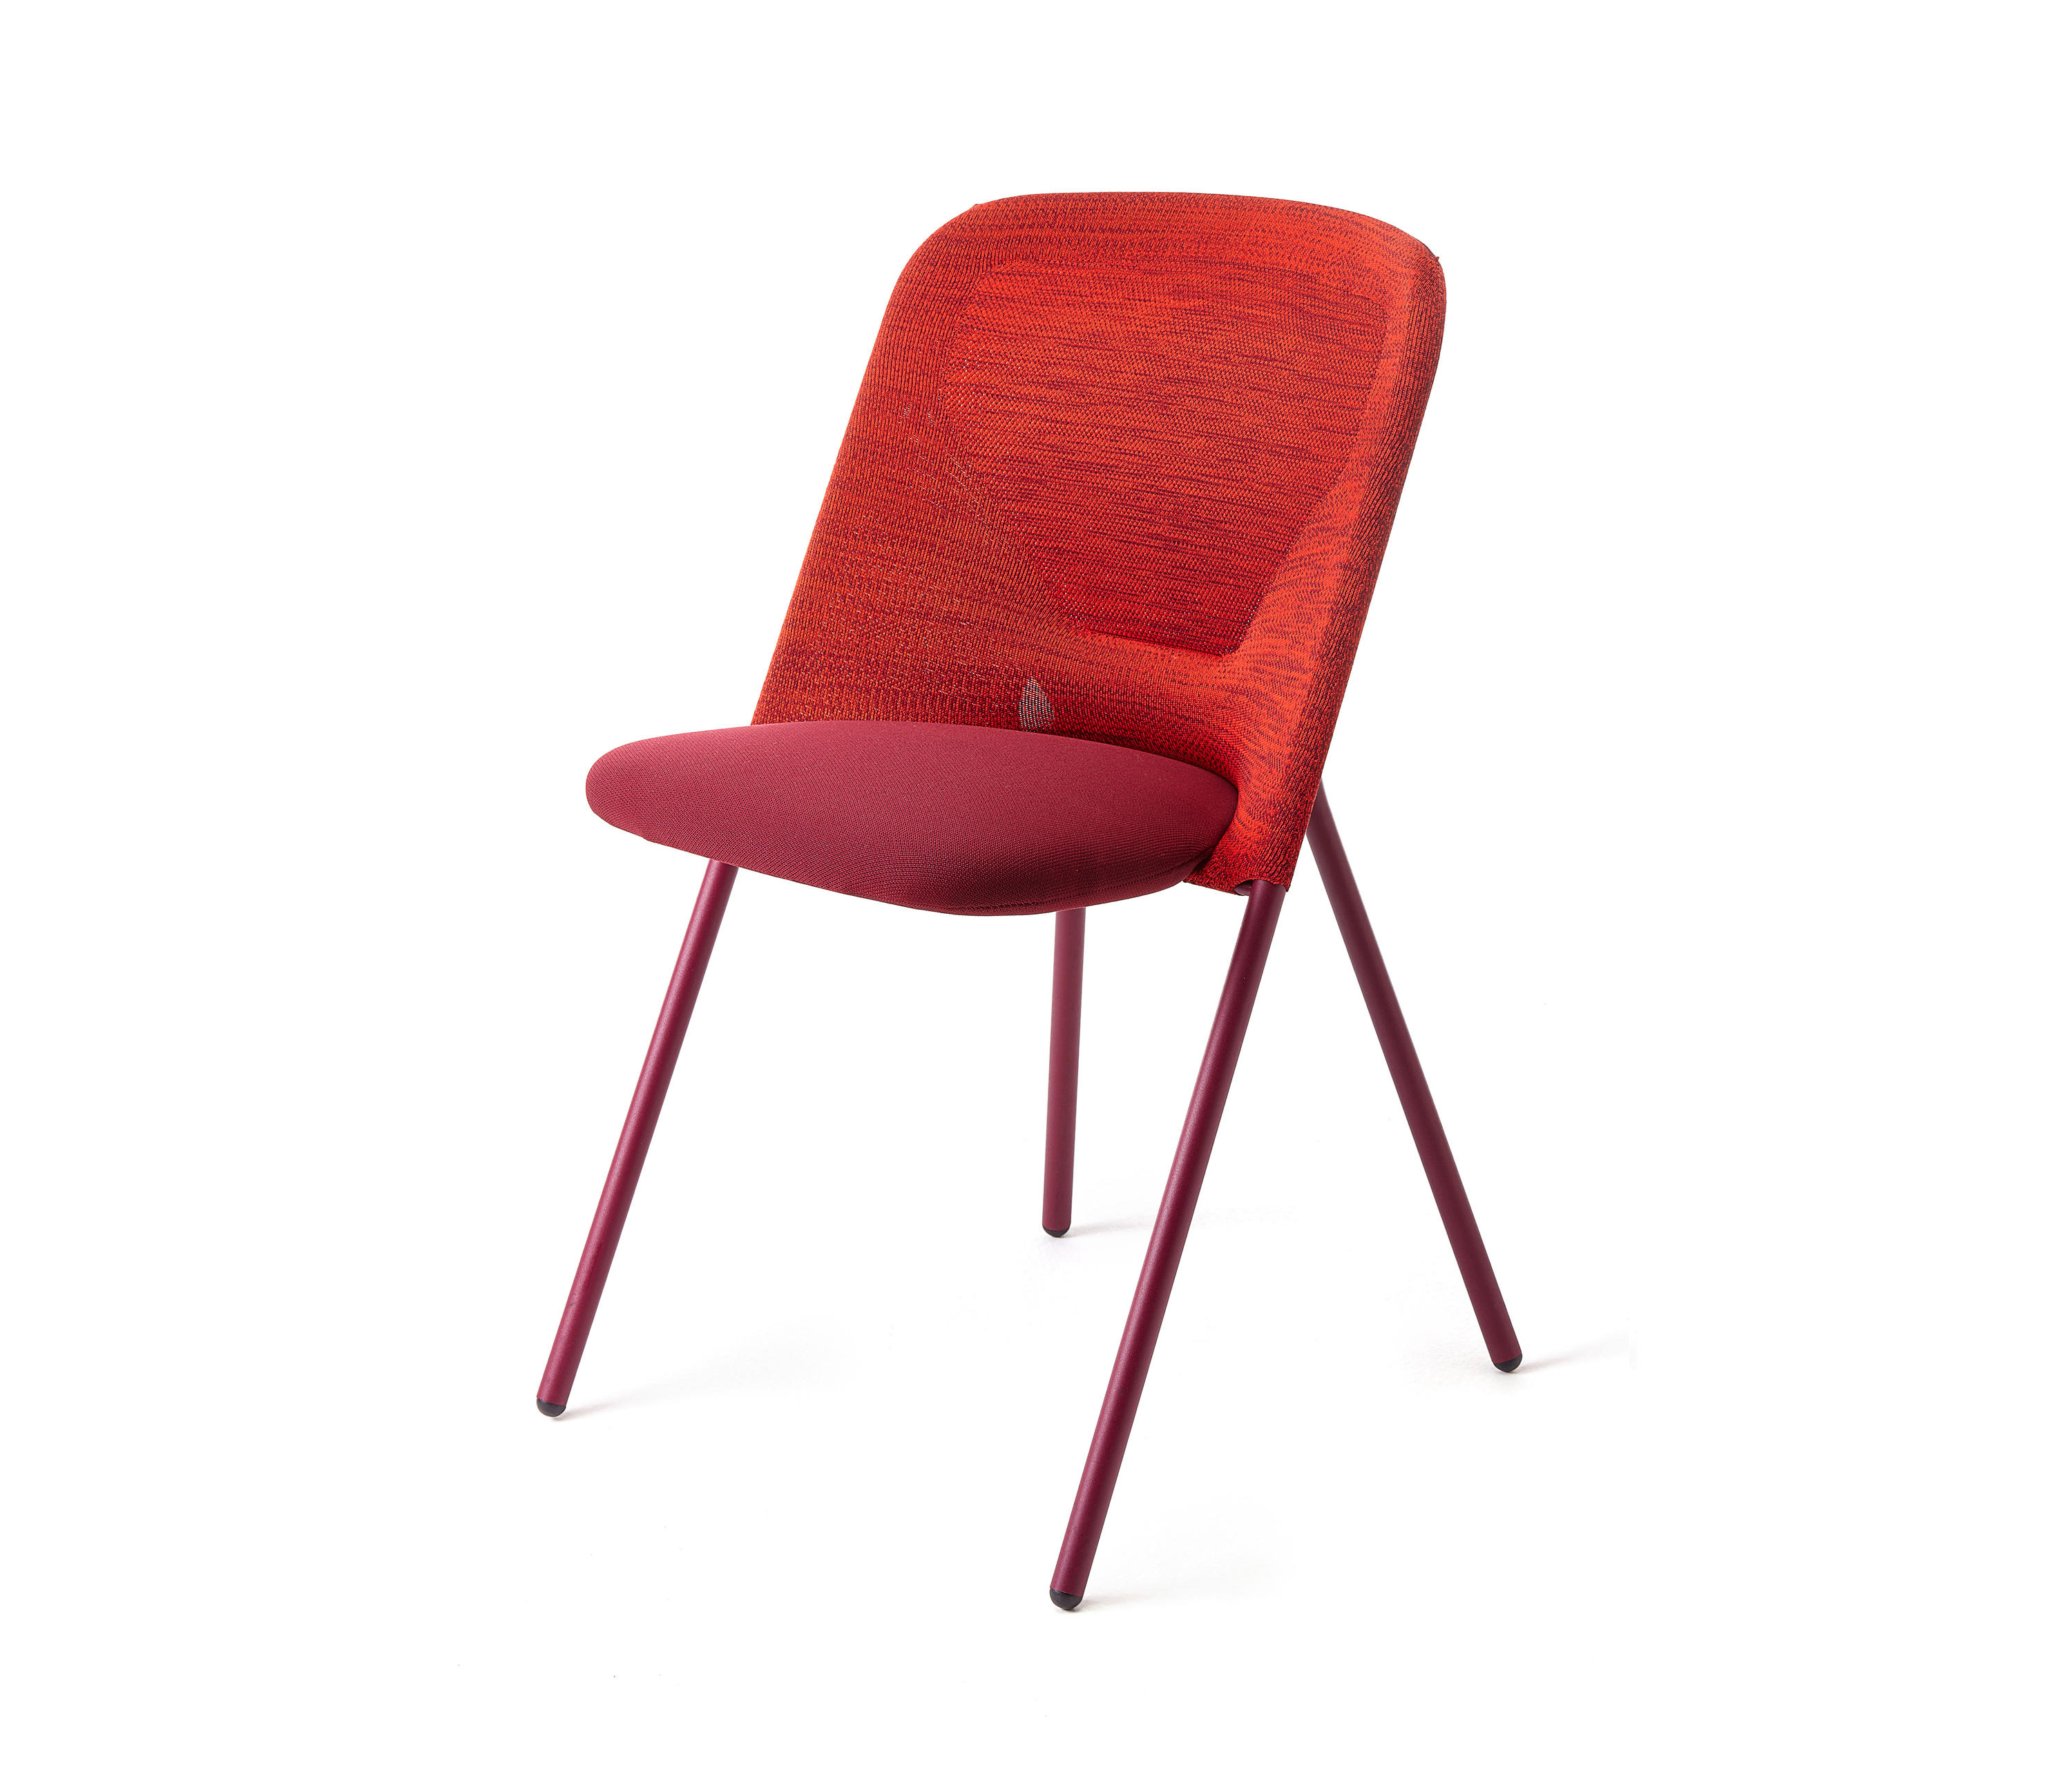 shift dining chair chairs from moooi architonic